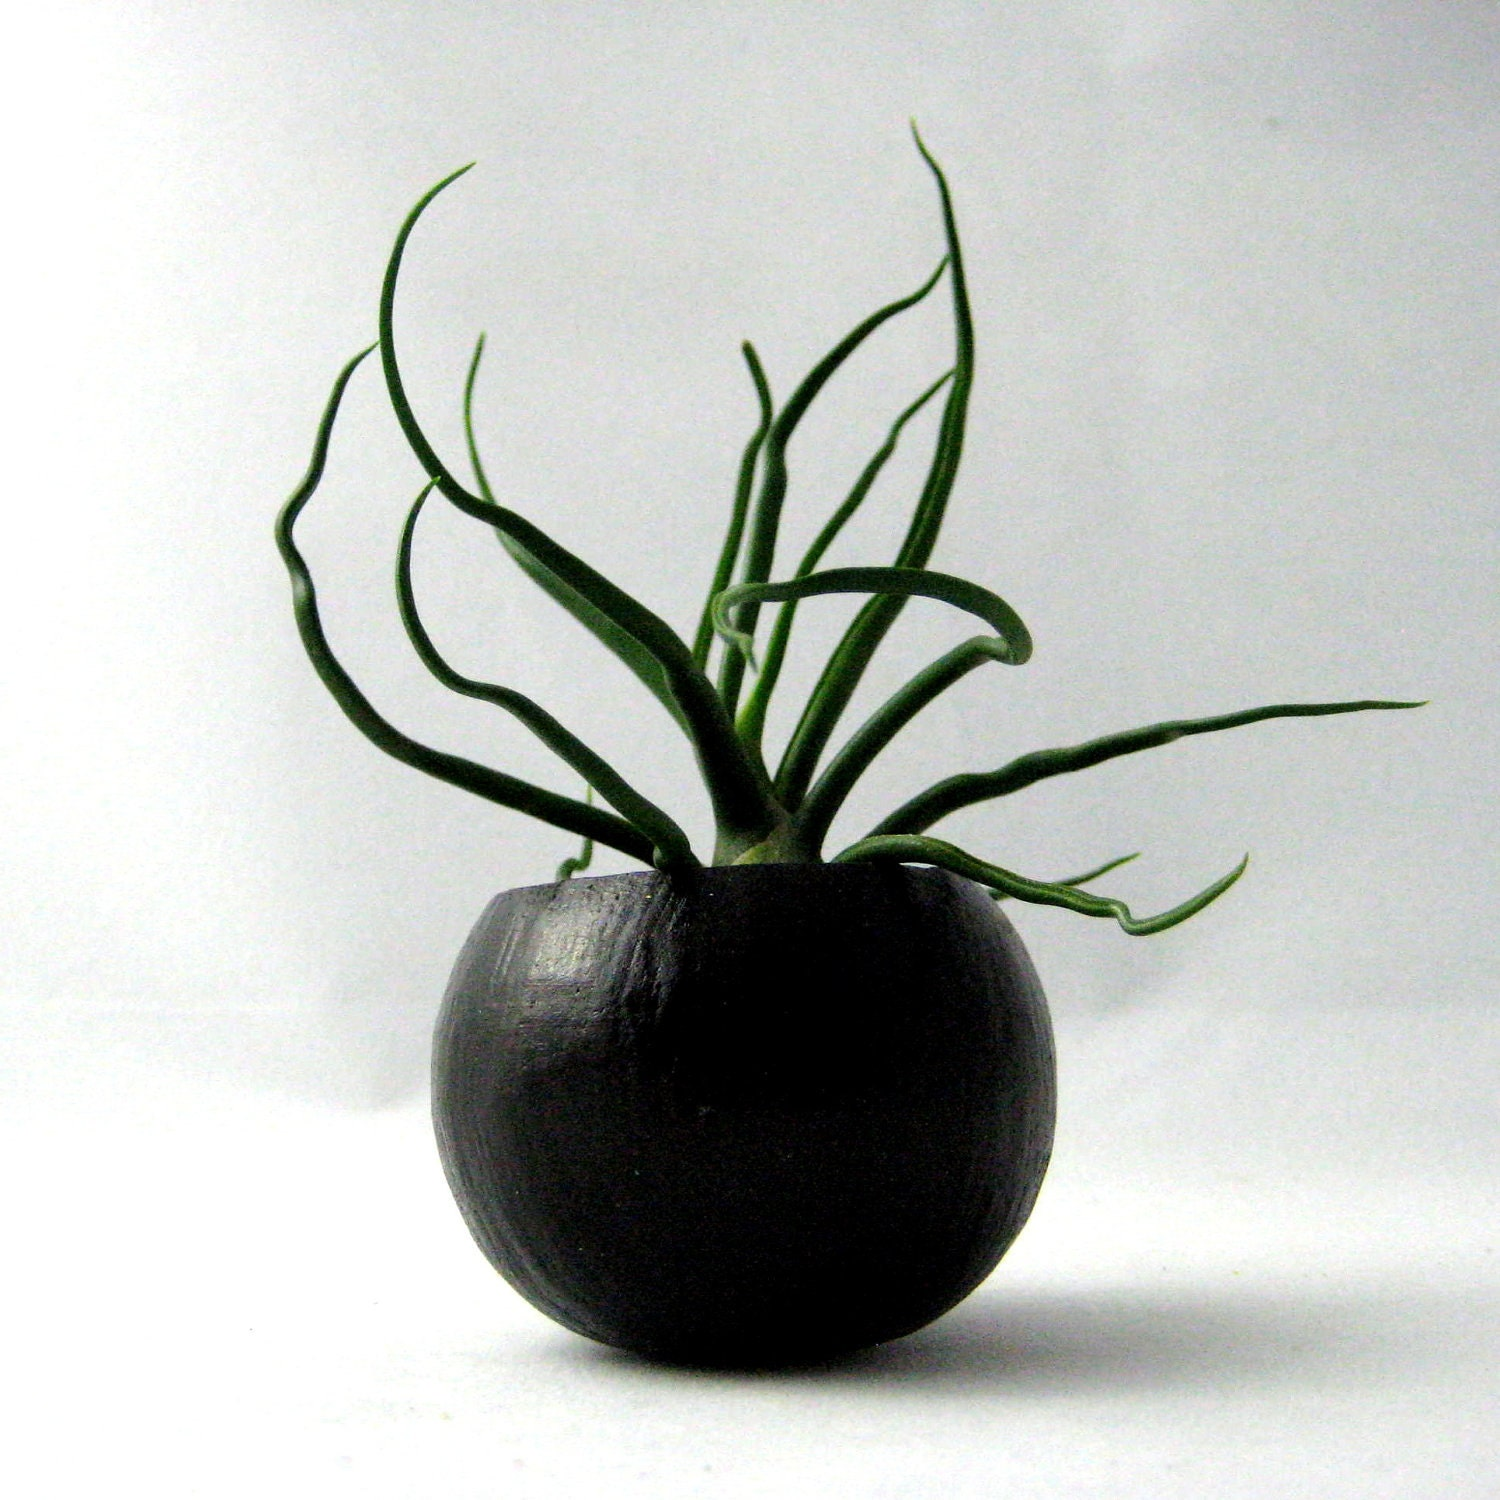 Mini Bulbosa Air Plant Container Pod - Black // Home and Garden // Planter // Gifts under 20 - seaandasters